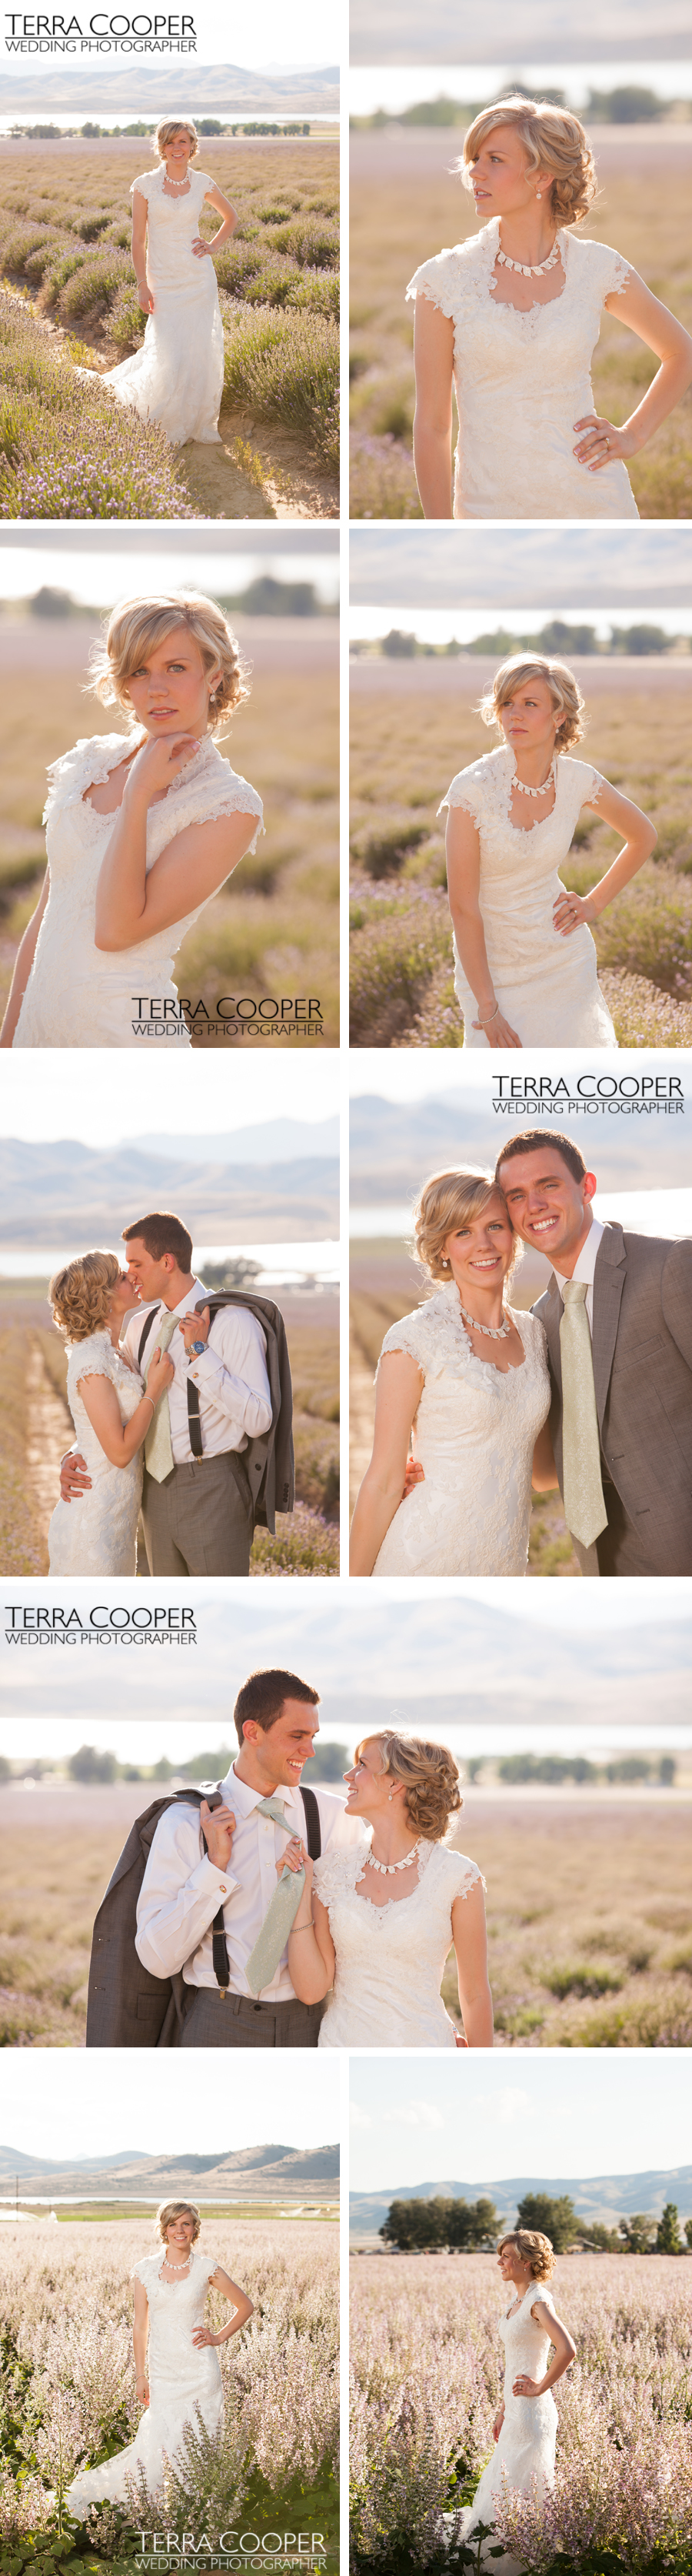 Idella cooper wedding